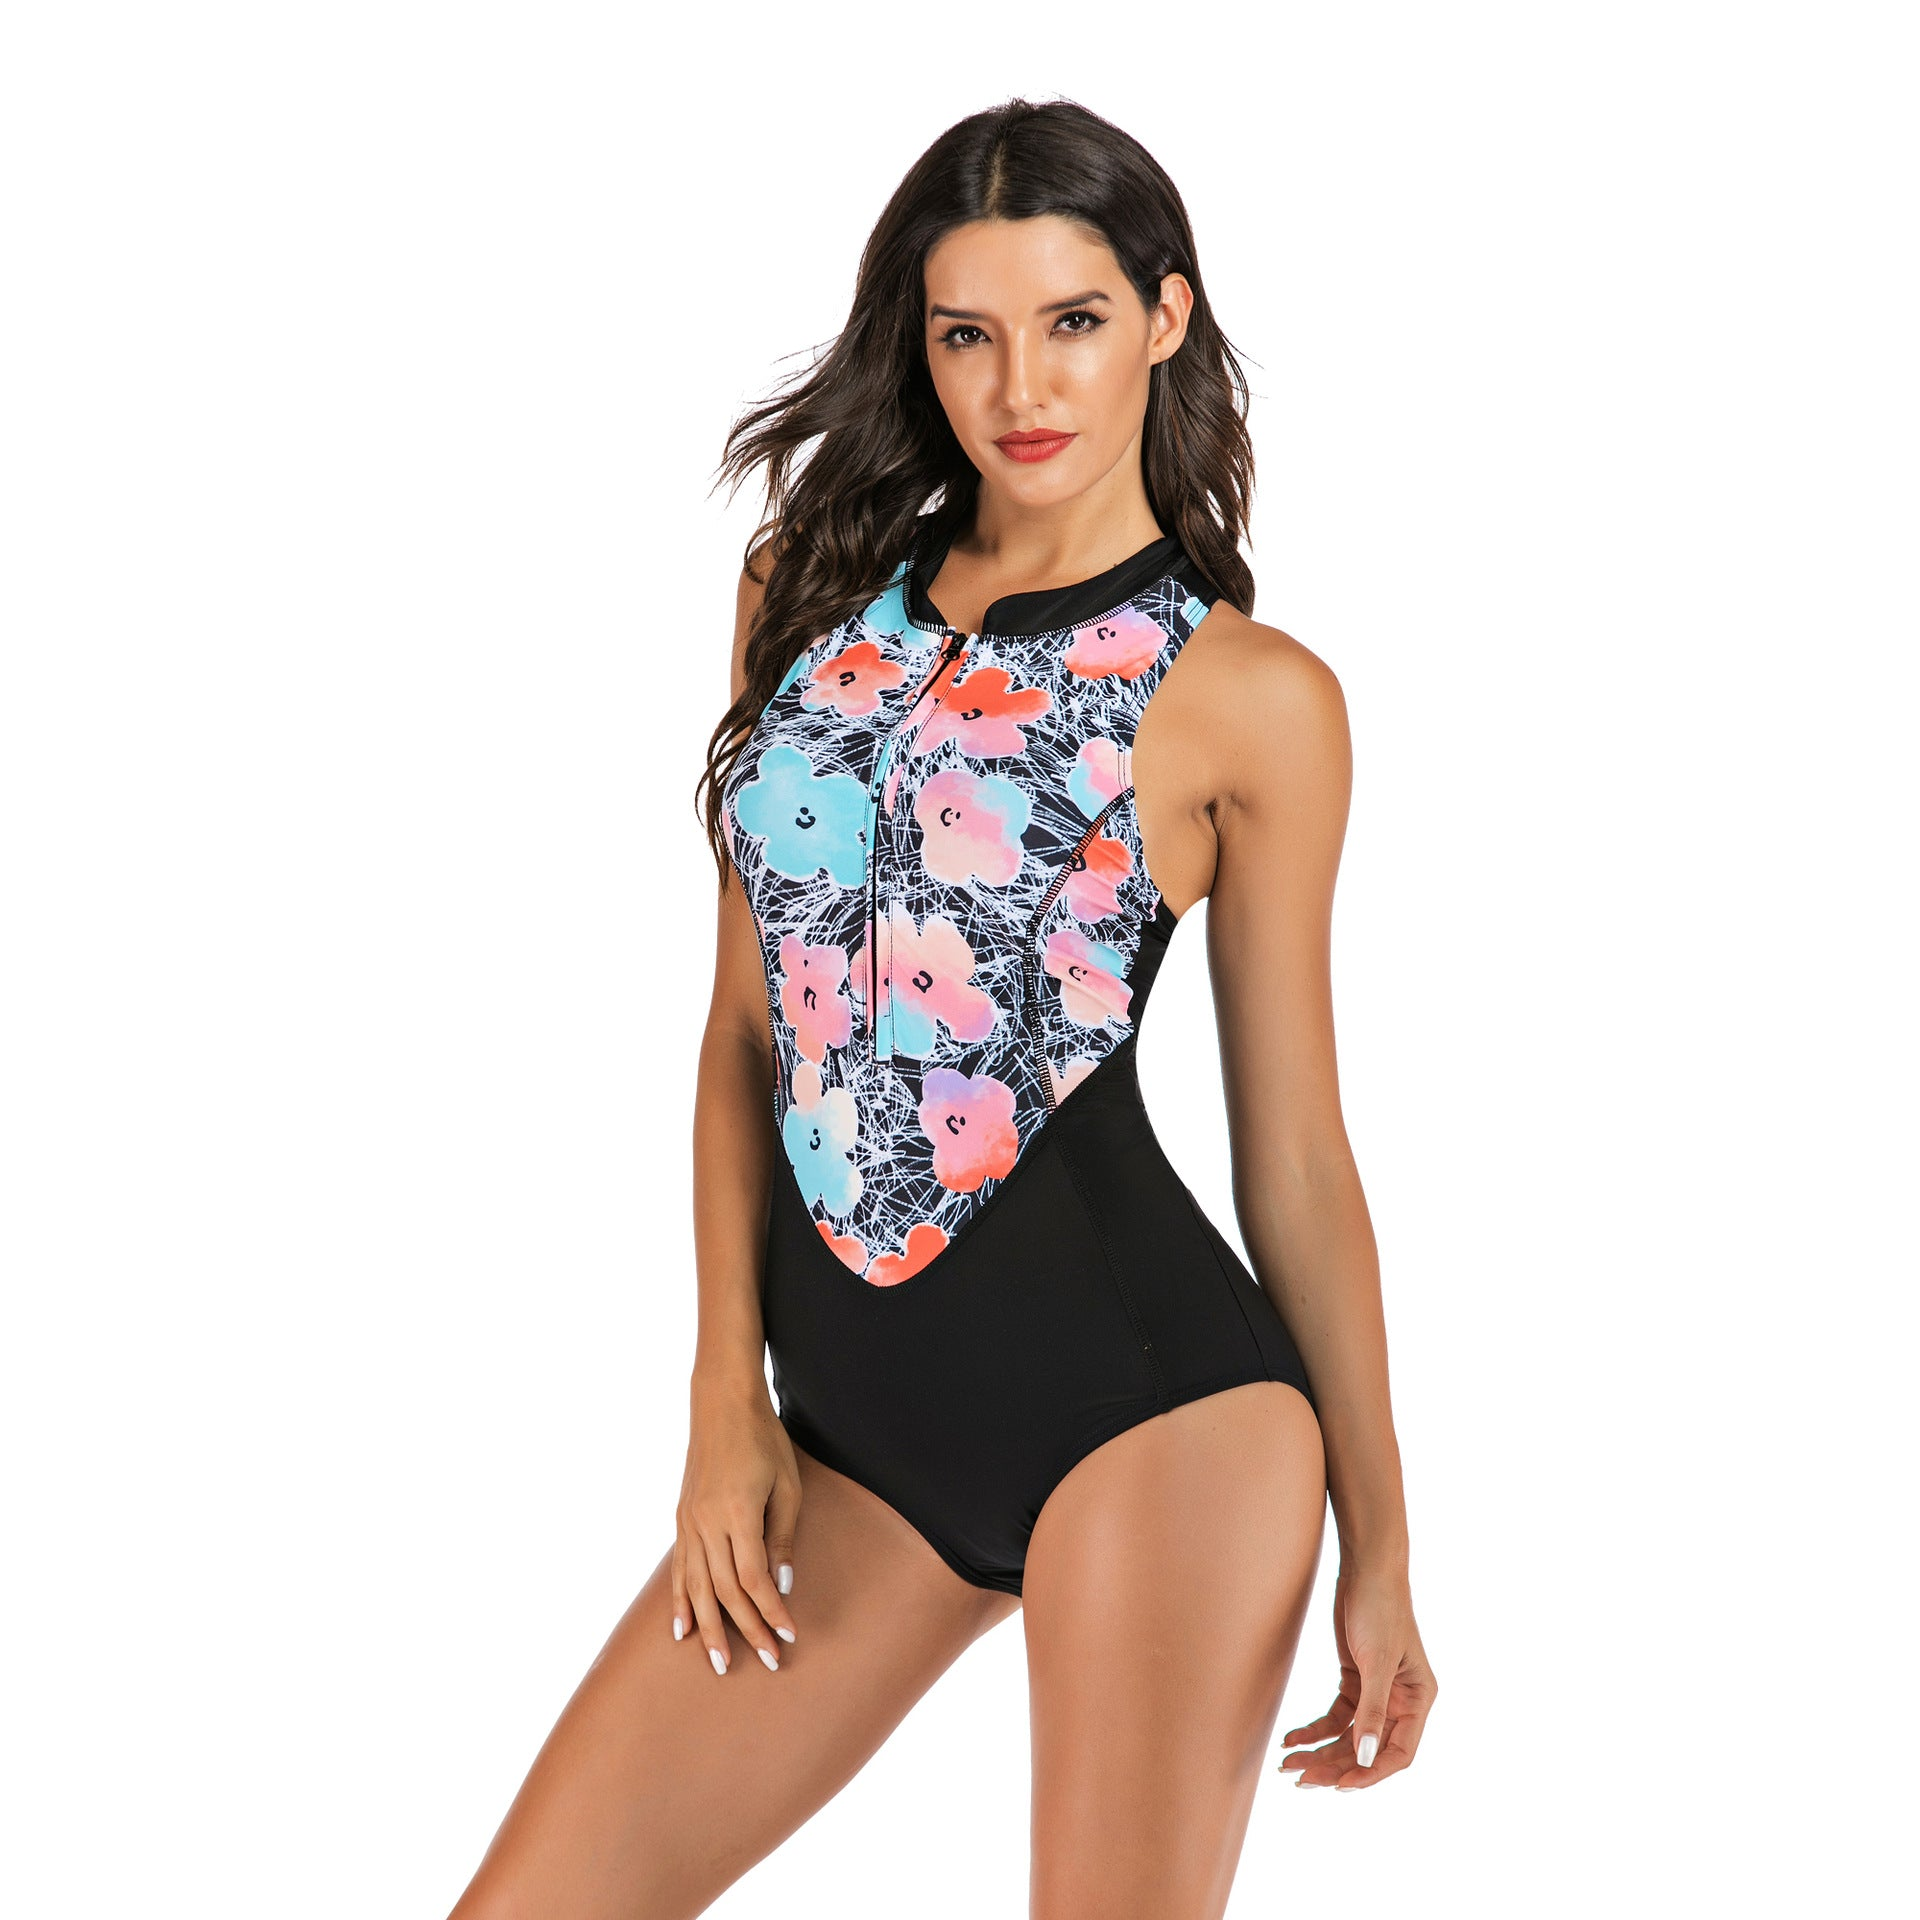 Oniwa Surfsuit One-Piece Swimsuit